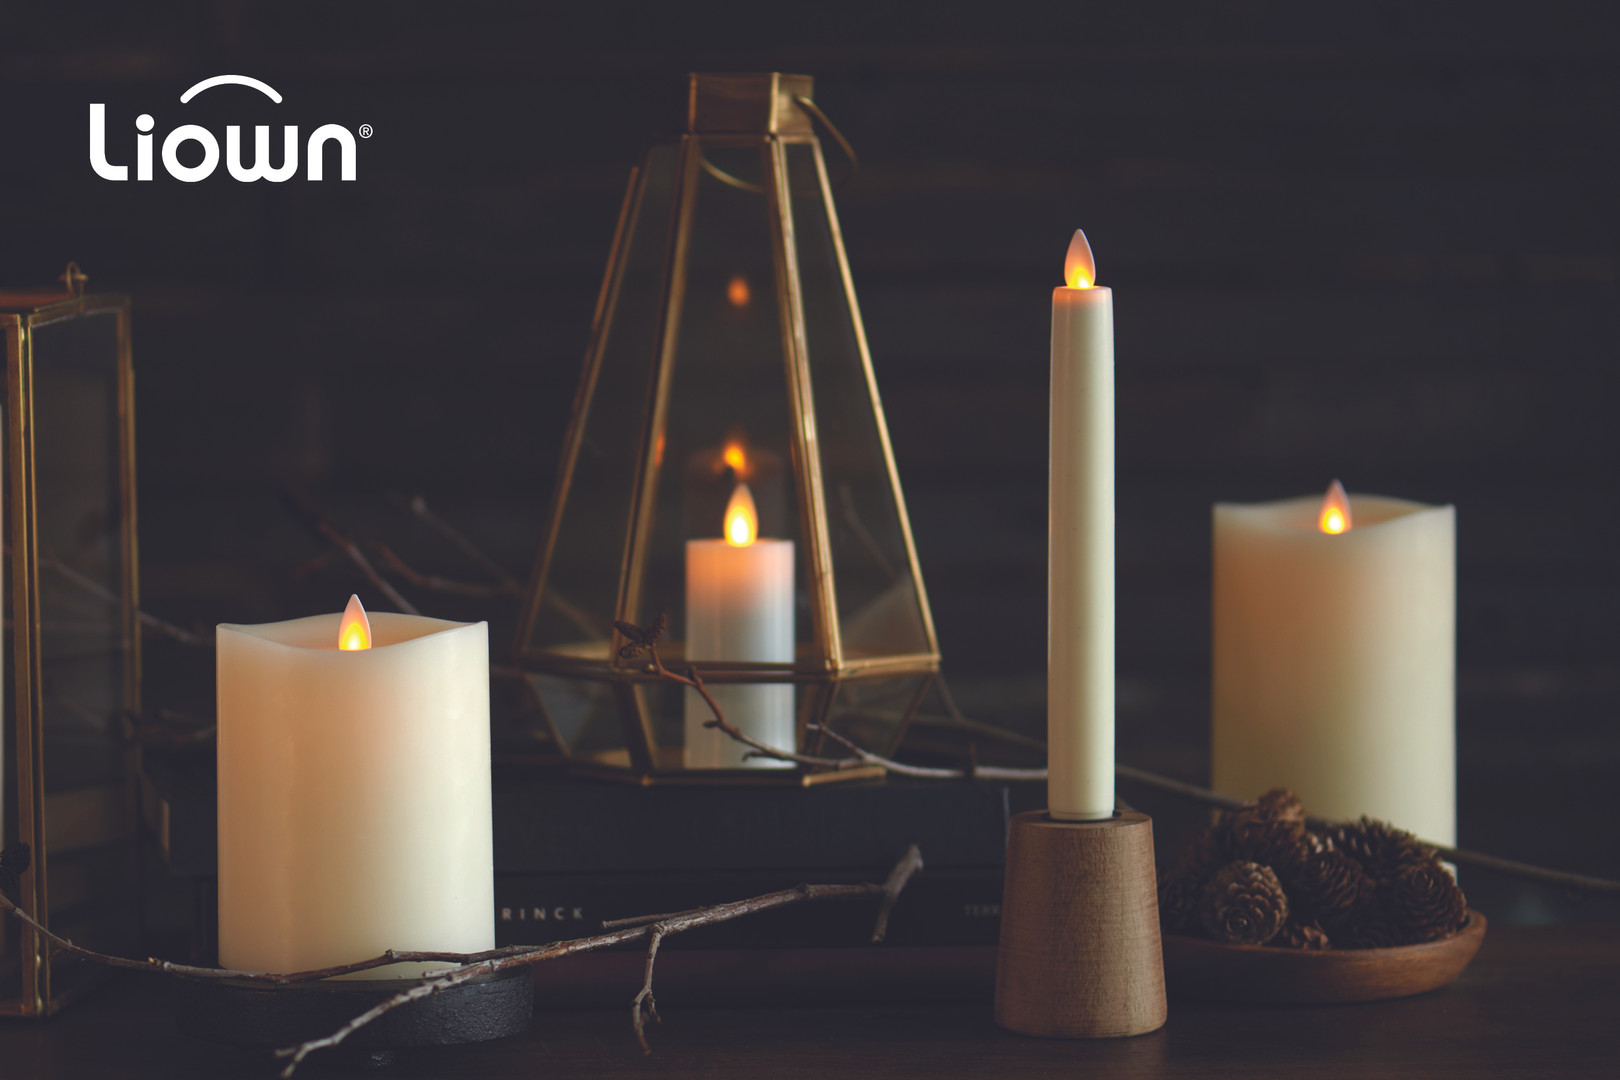 Liown Moving Flame Candles